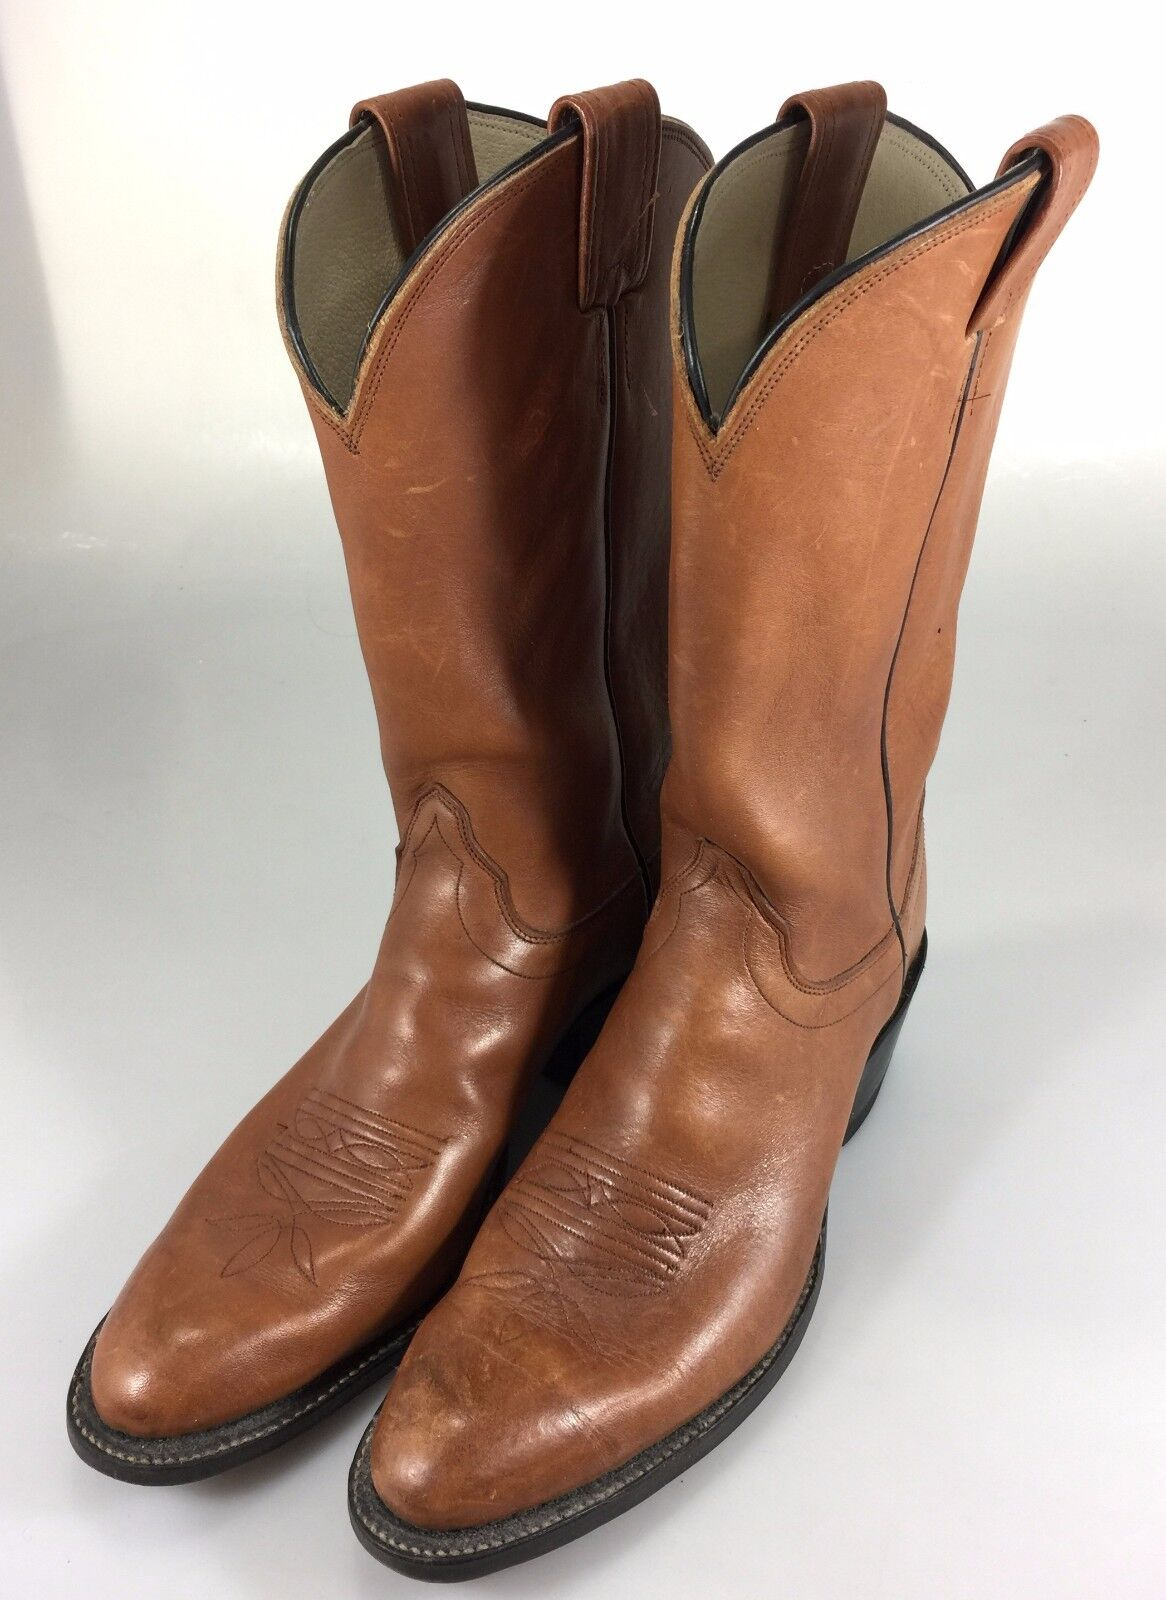 Olathe Mens 11 AAA Classic Cowboy Western Boots Brown Leather Tall 5090